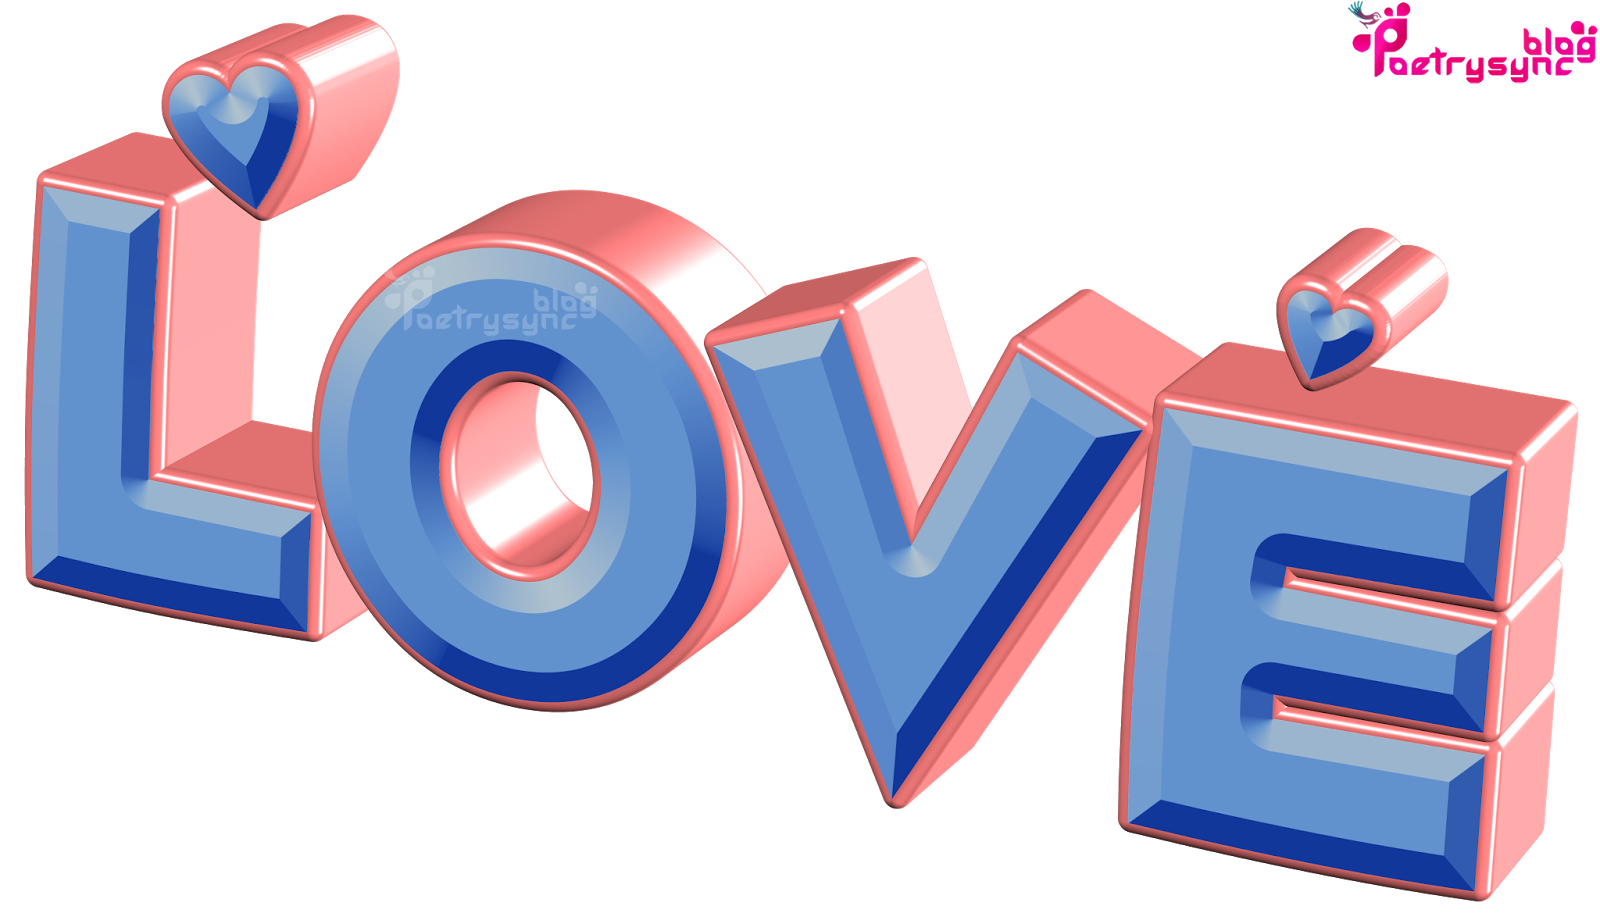 Love description about cultural. 3d png effect royalty free stock